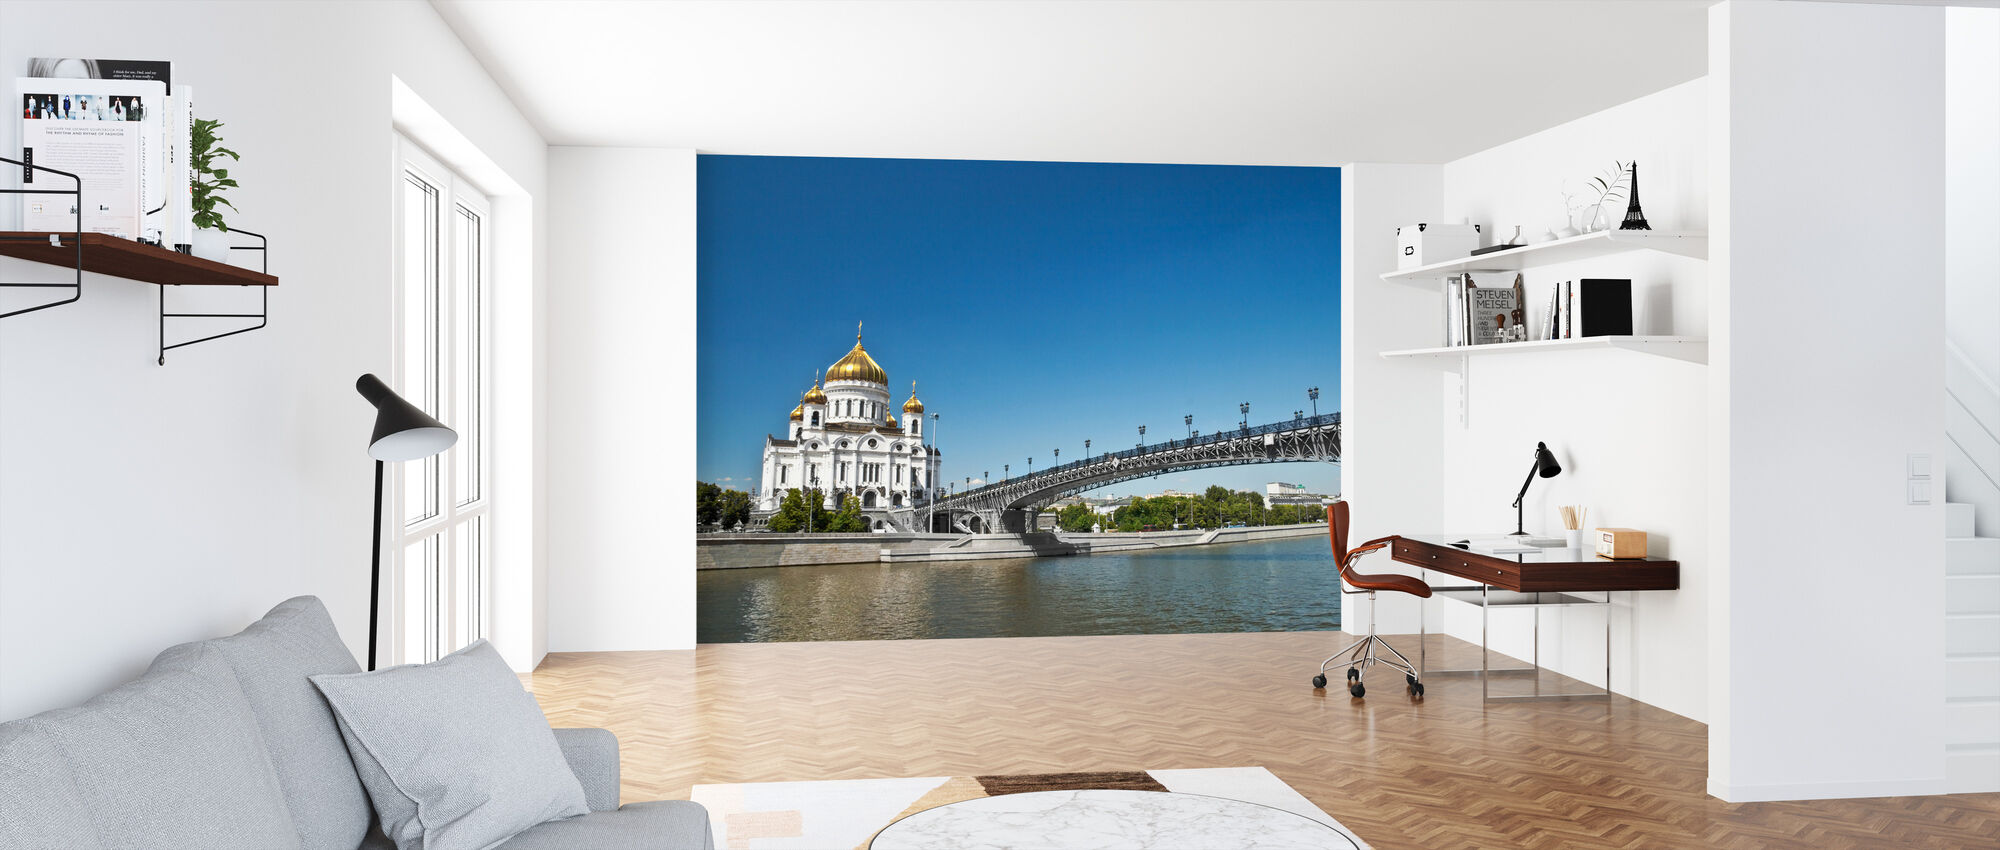 Cathedral on Moscow River Bank - Wallpaper - Office